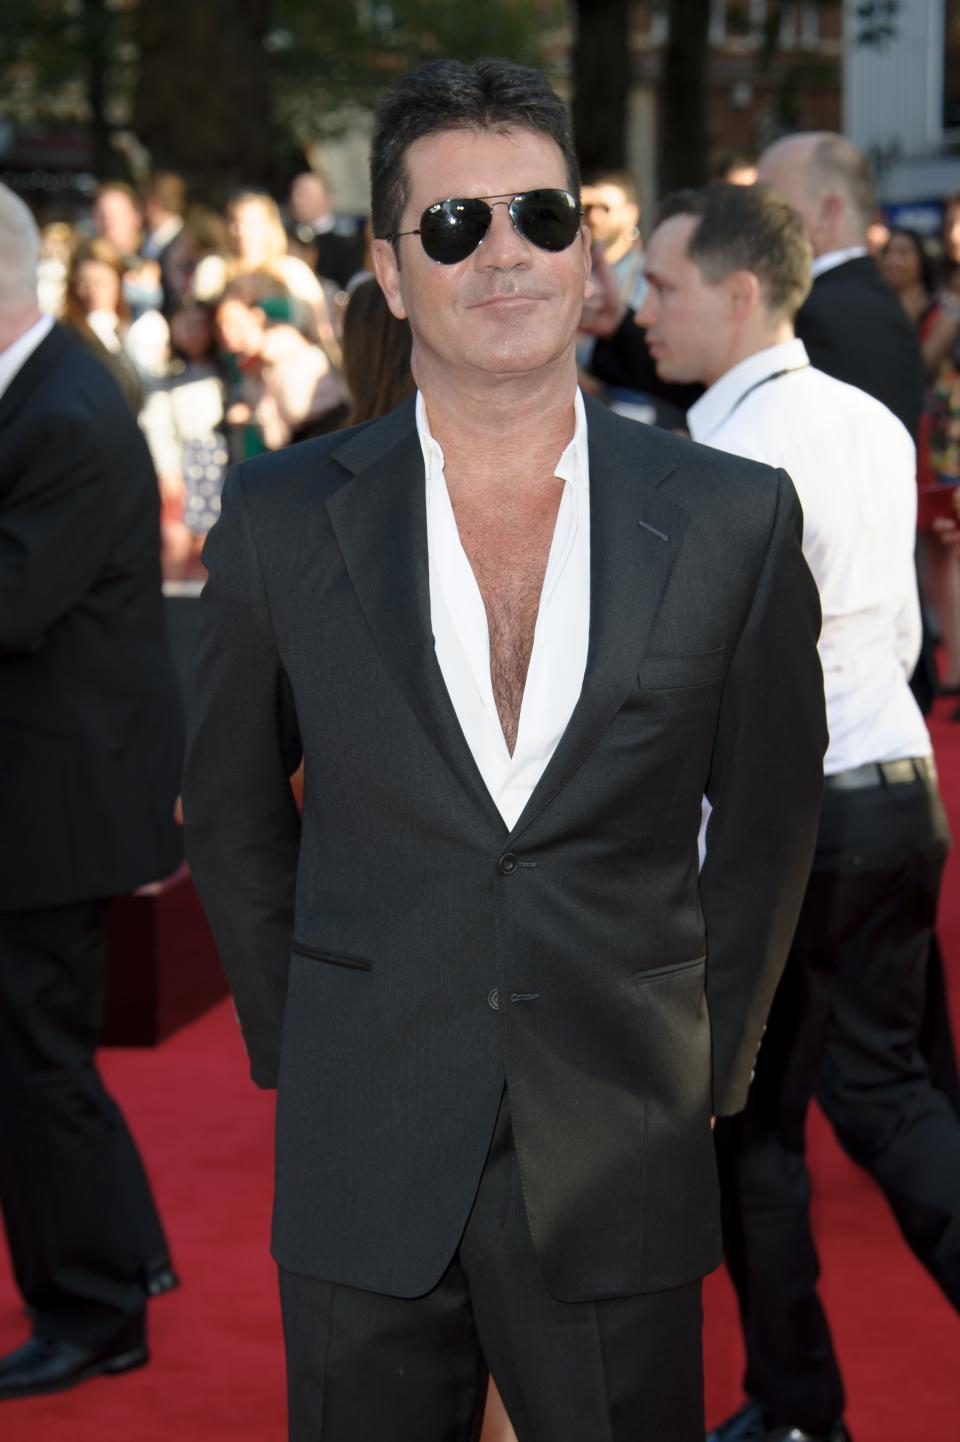 British producer Simon Cowell arrives for the UK Premiere of 'One Direction: This Is Us 3D' at a central London cinema, Tuesday, Aug. 20, 2013. (Photo by Jonathan Short/Invision/AP)